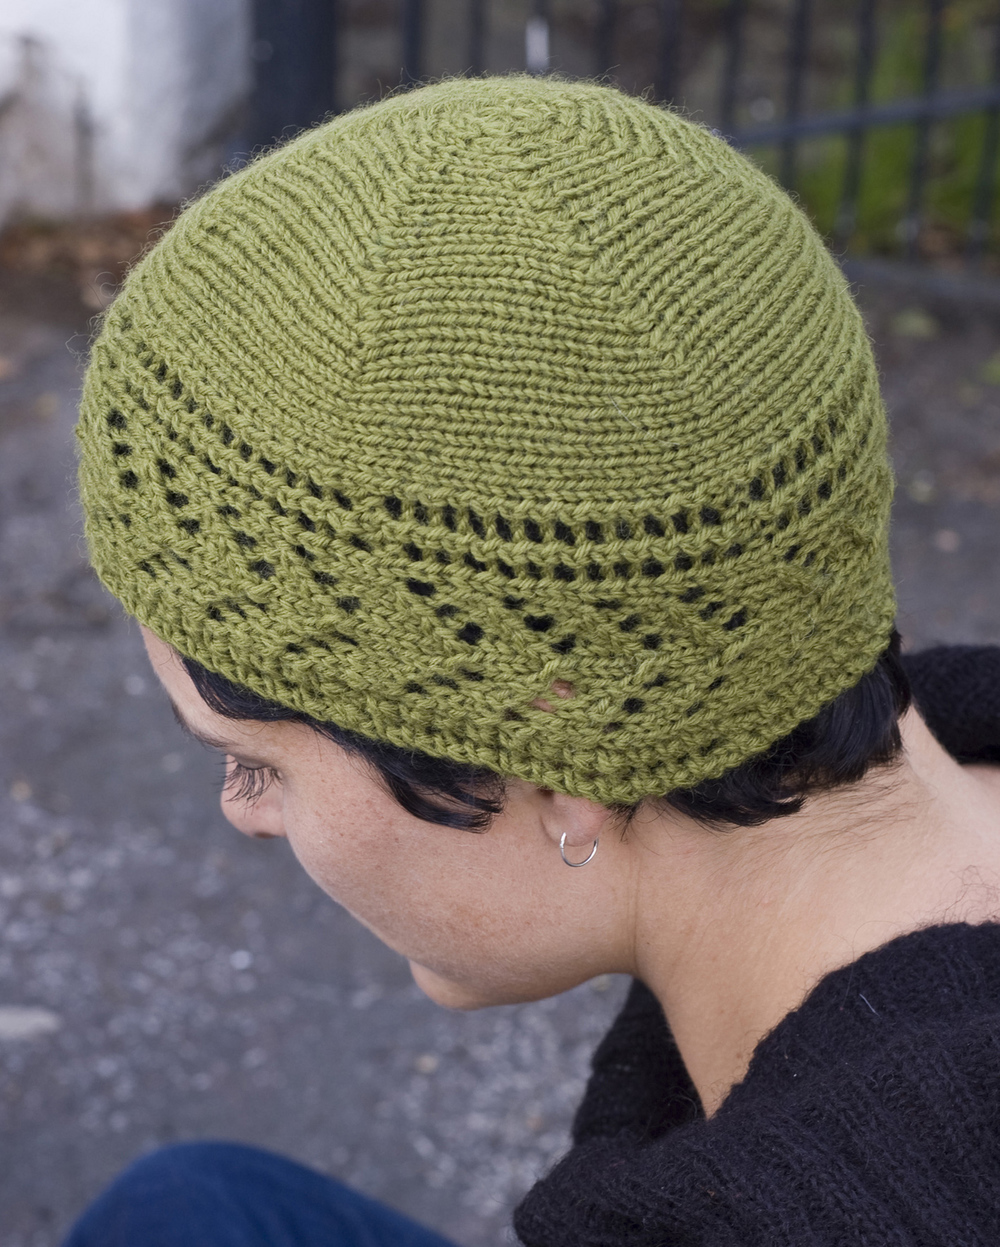 Dryad sideways knit summer lace beanie pattern